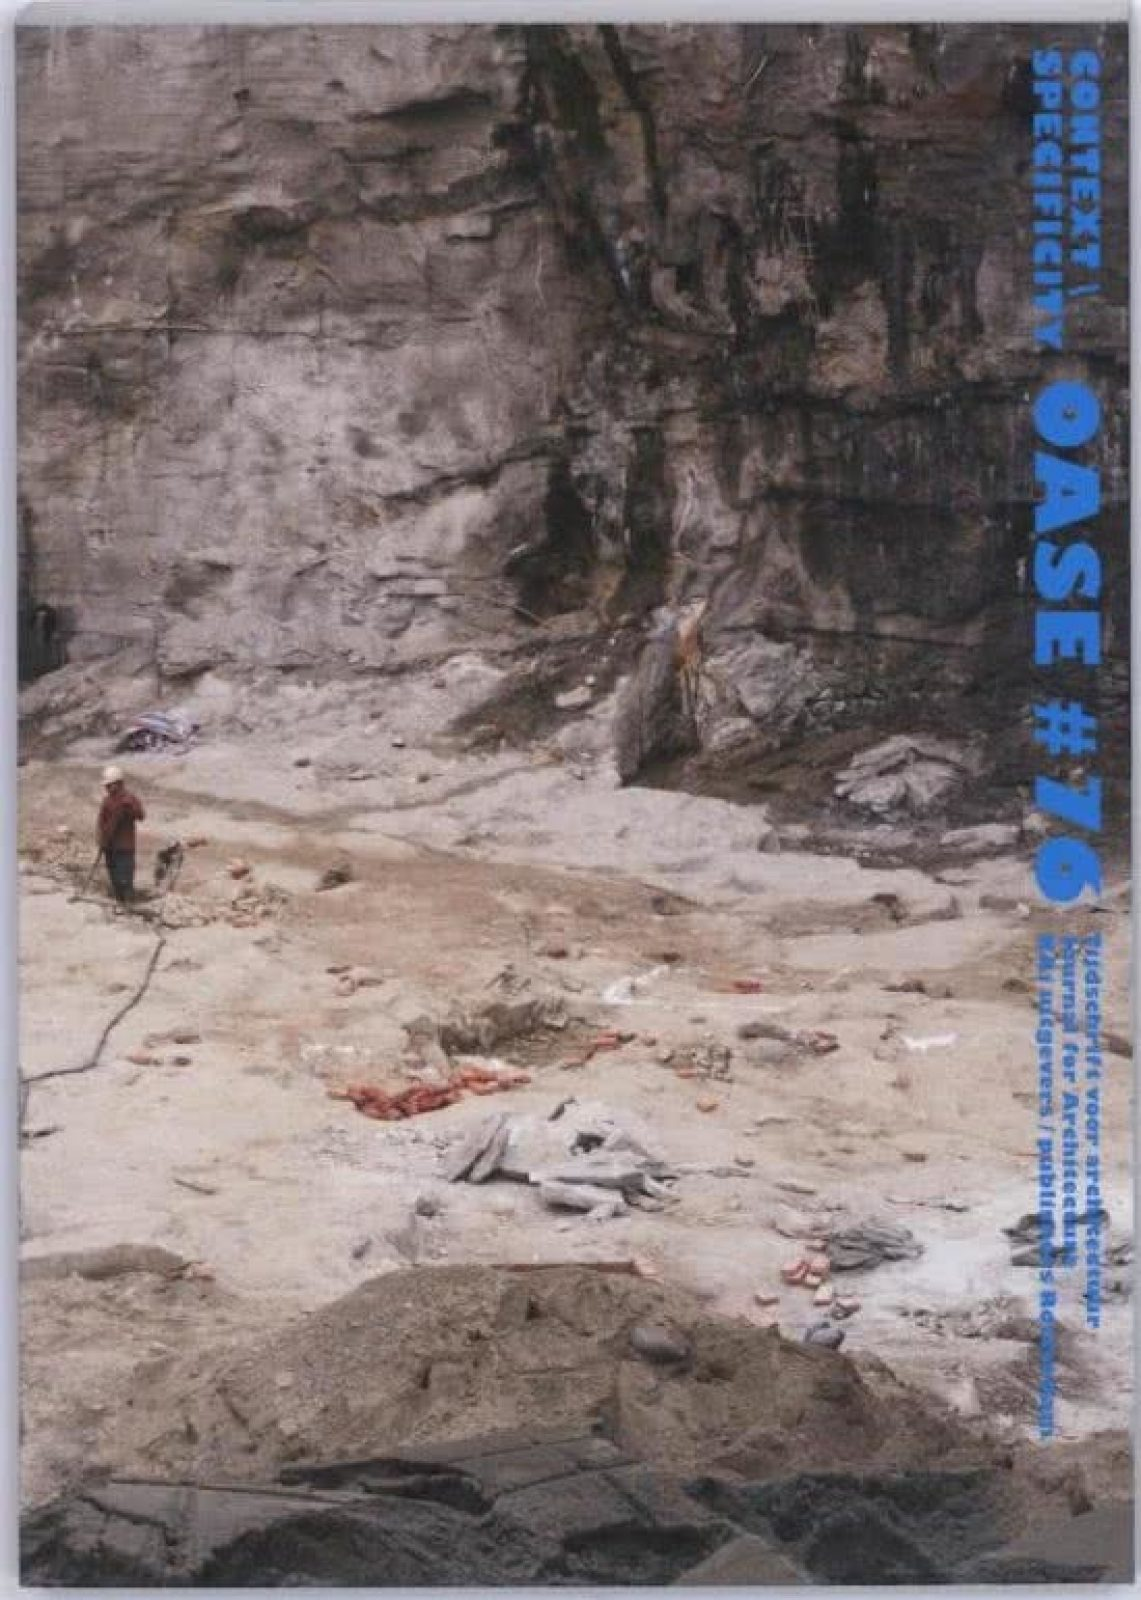 Oase 76 Cover